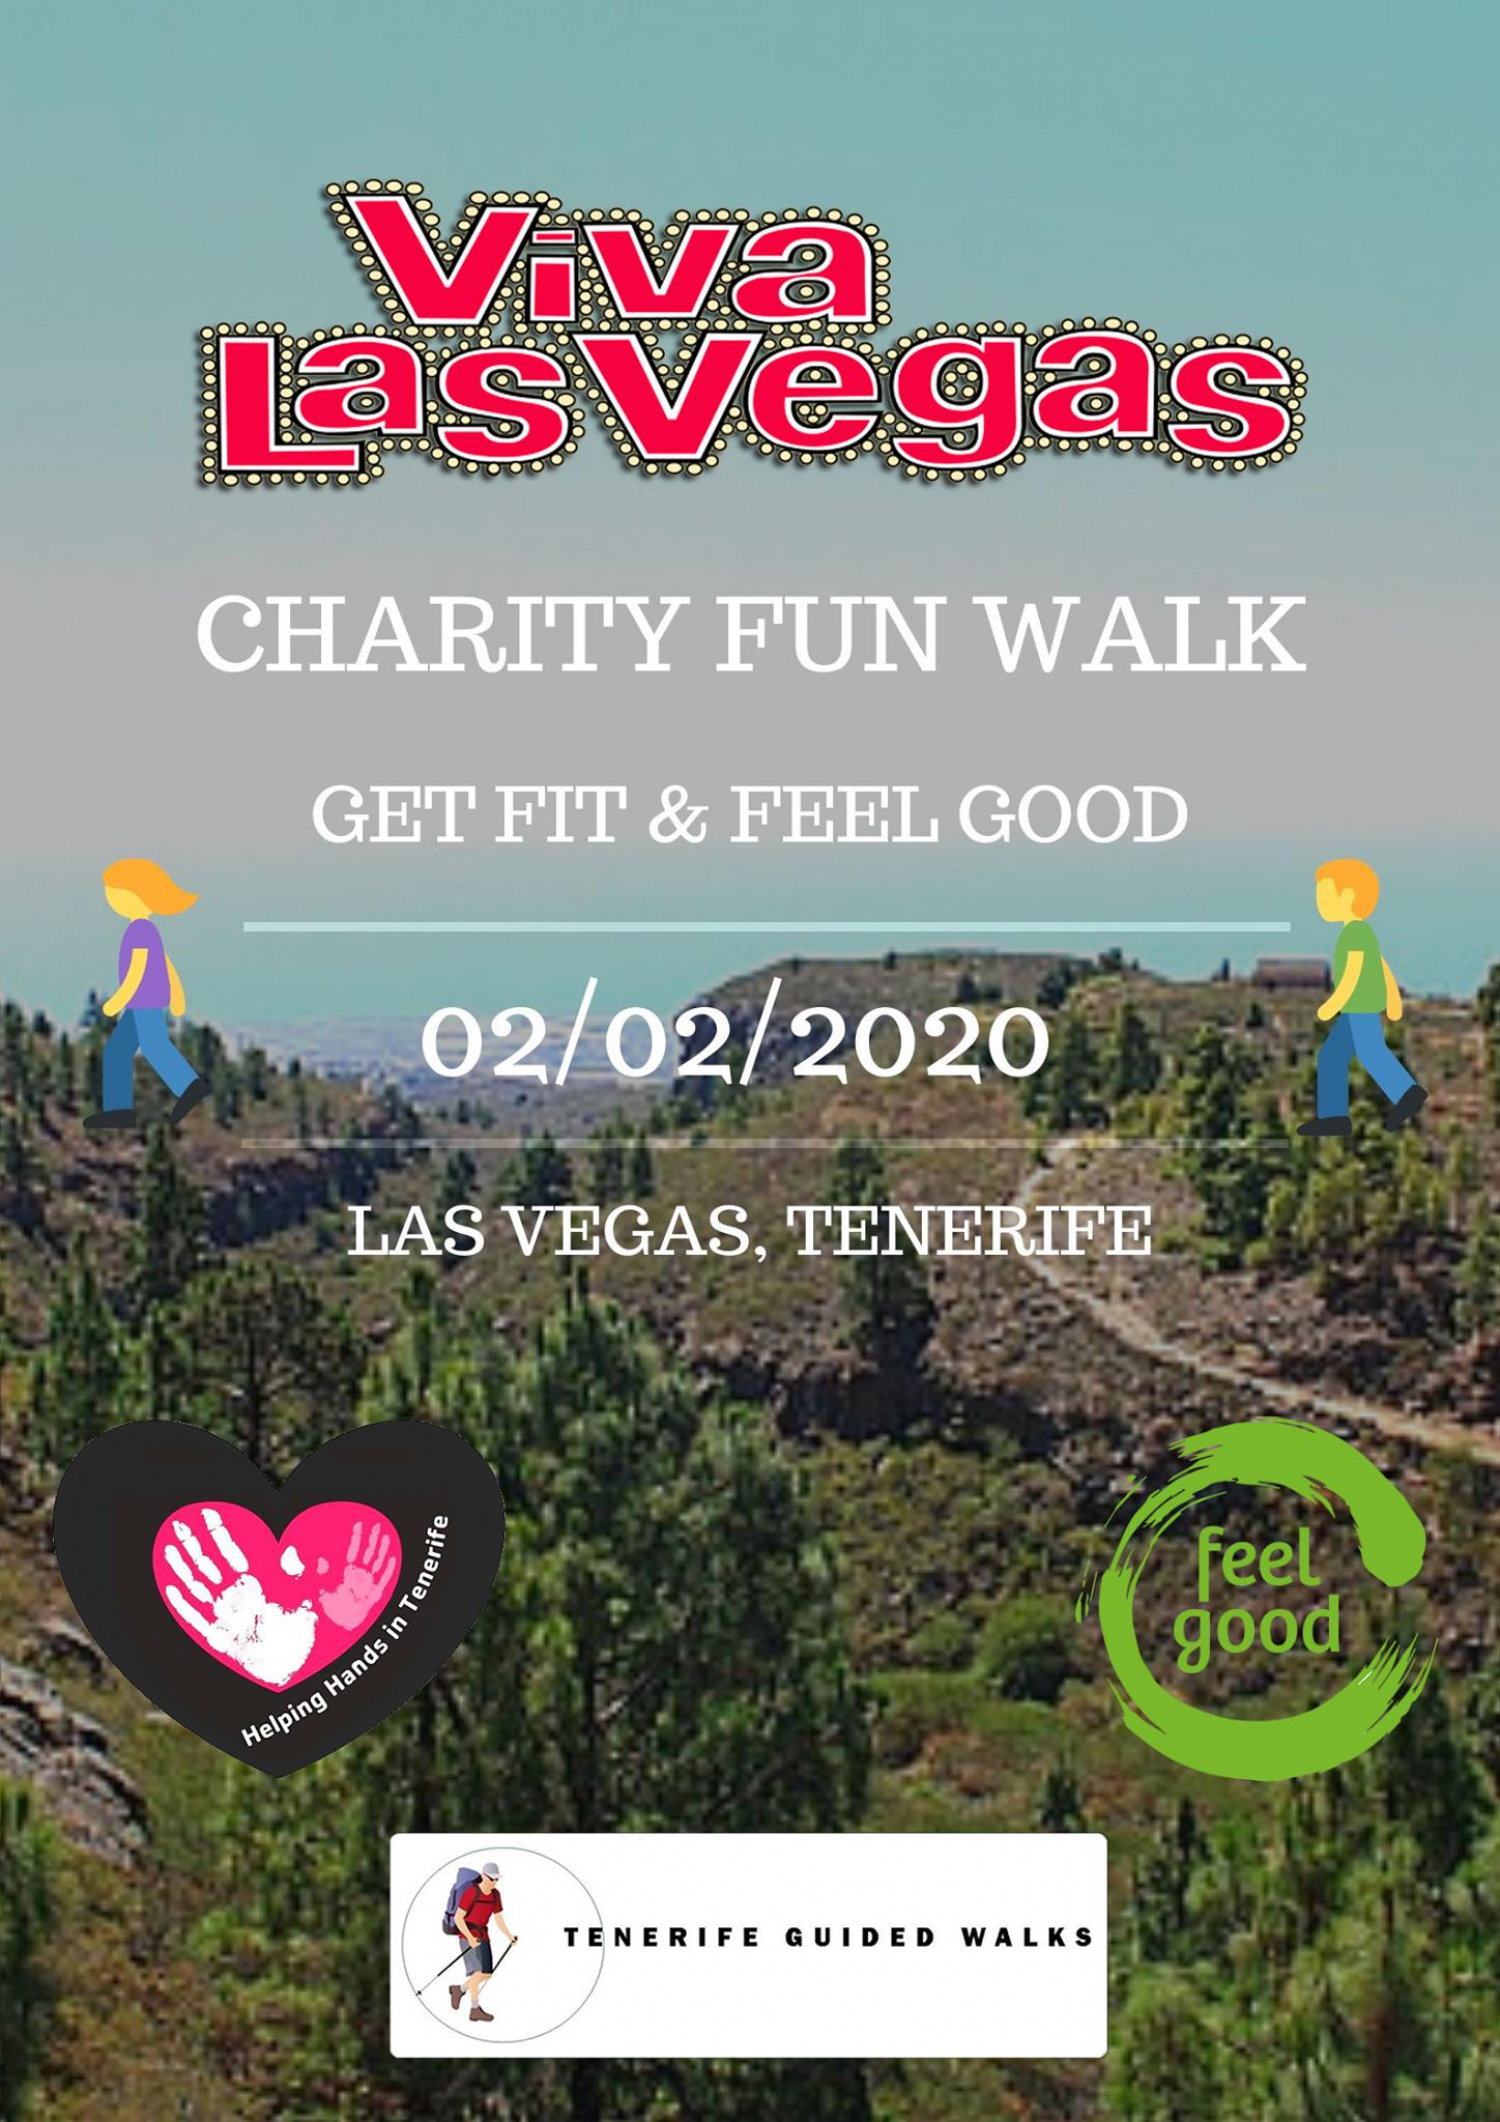 Viva Las Vegas Sponsored Charity Walk